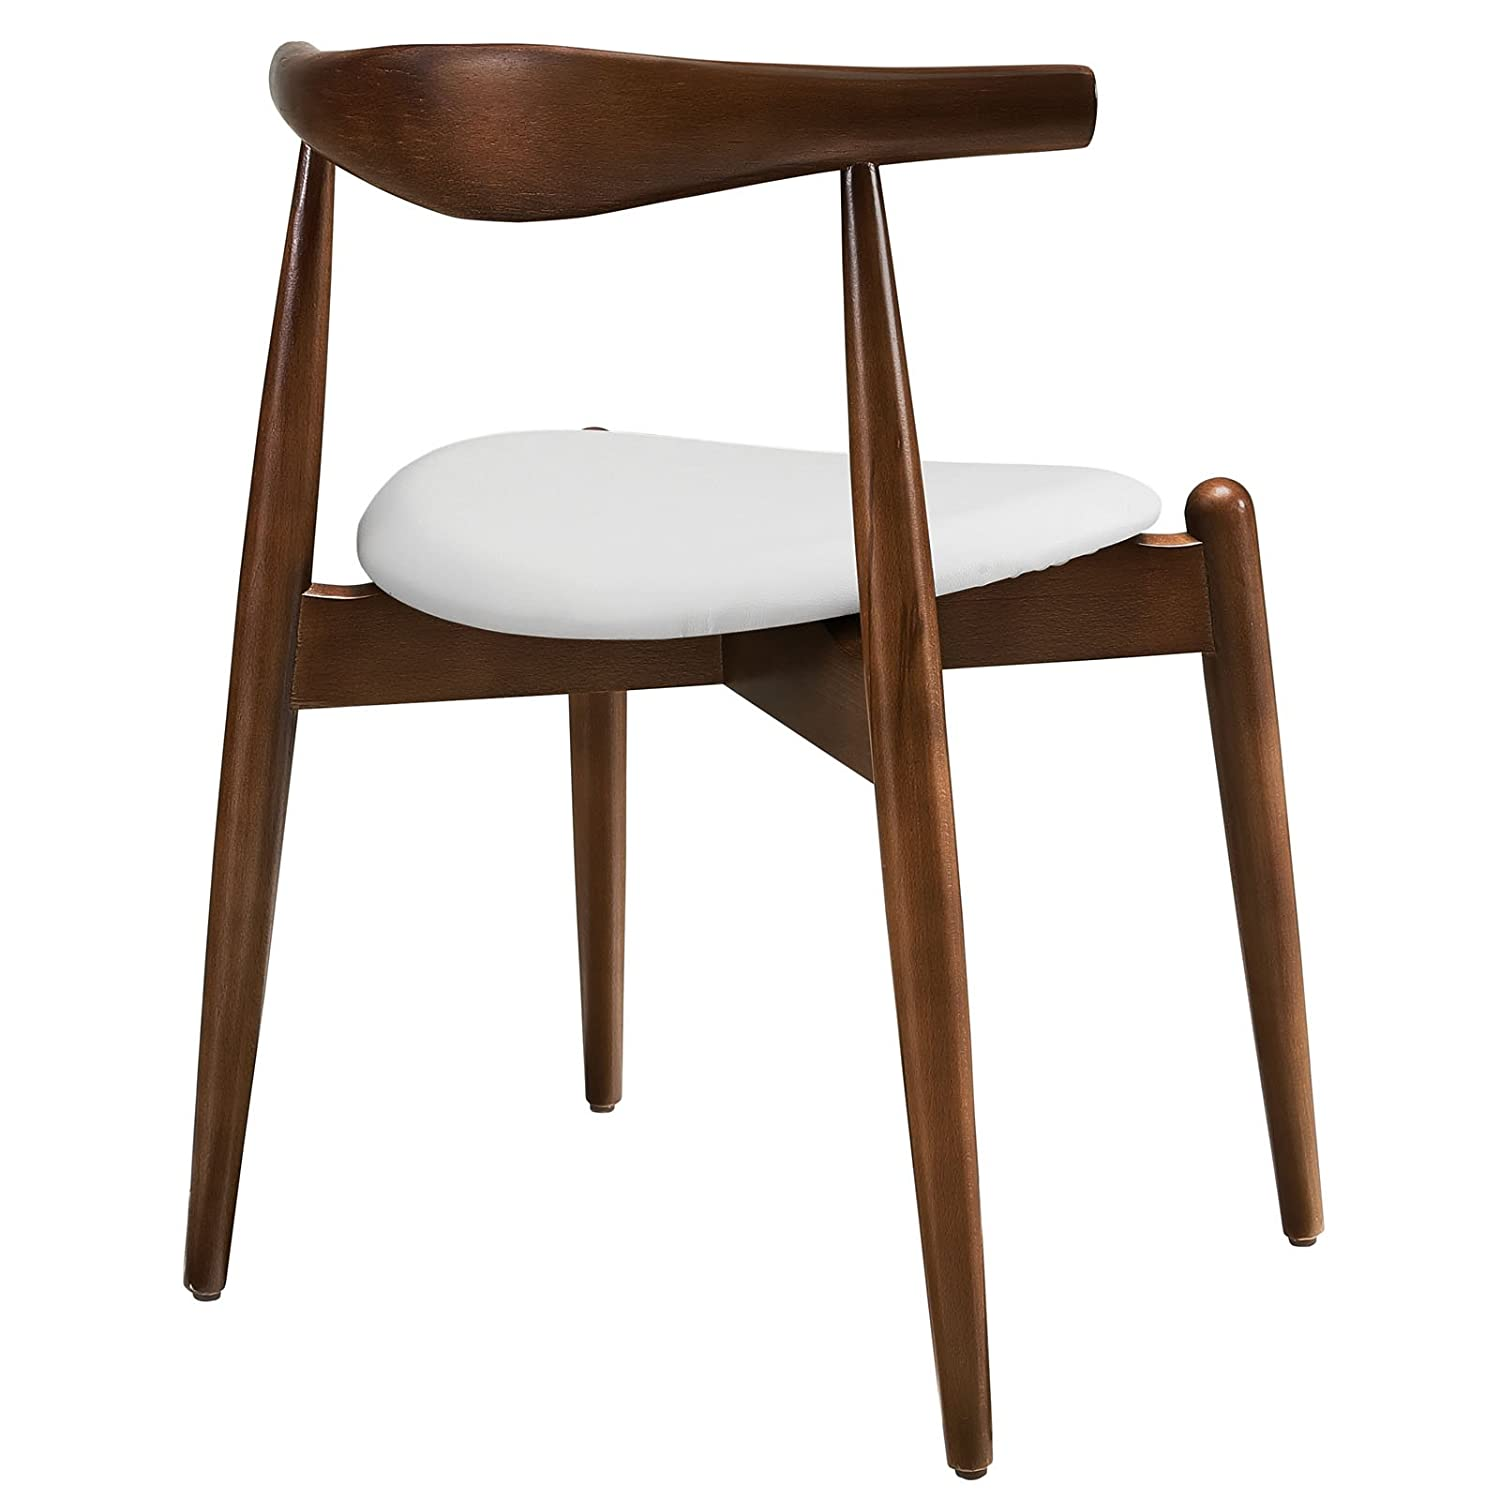 Elegant Amazon.com   Modway Stalwart Beechwood Mid Century Dining Chair With Faux  Leather Seat In Walnut White   Chairs